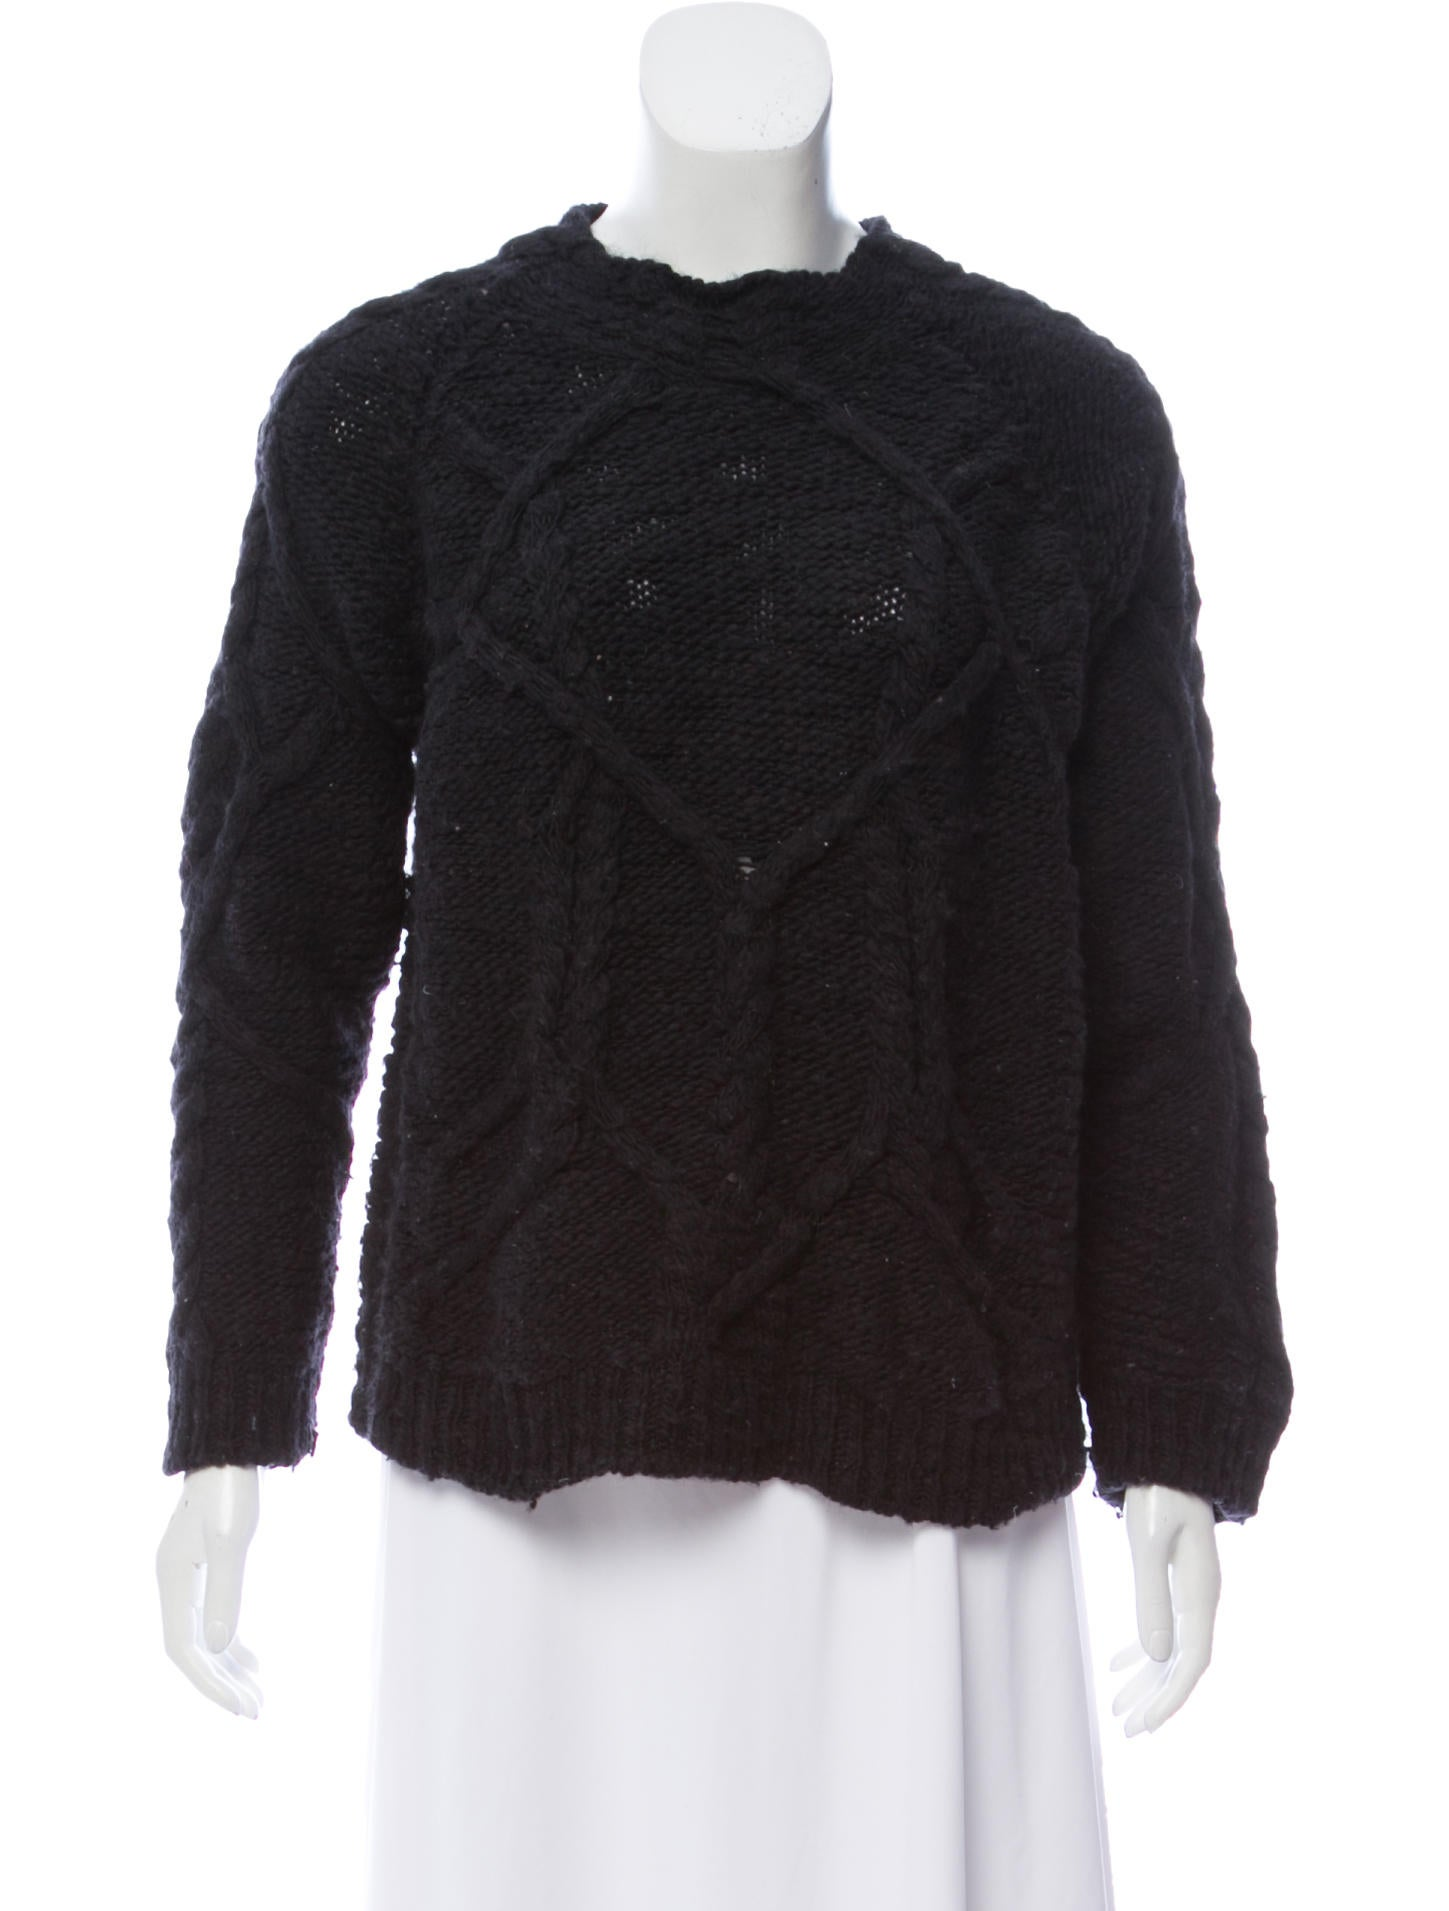 Websites Online Iro Basilia Wool Sweater Supply Cheap Price Clearance Discounts Buy Cheap Pay With Paypal Buy For Sale 2yd8Linac